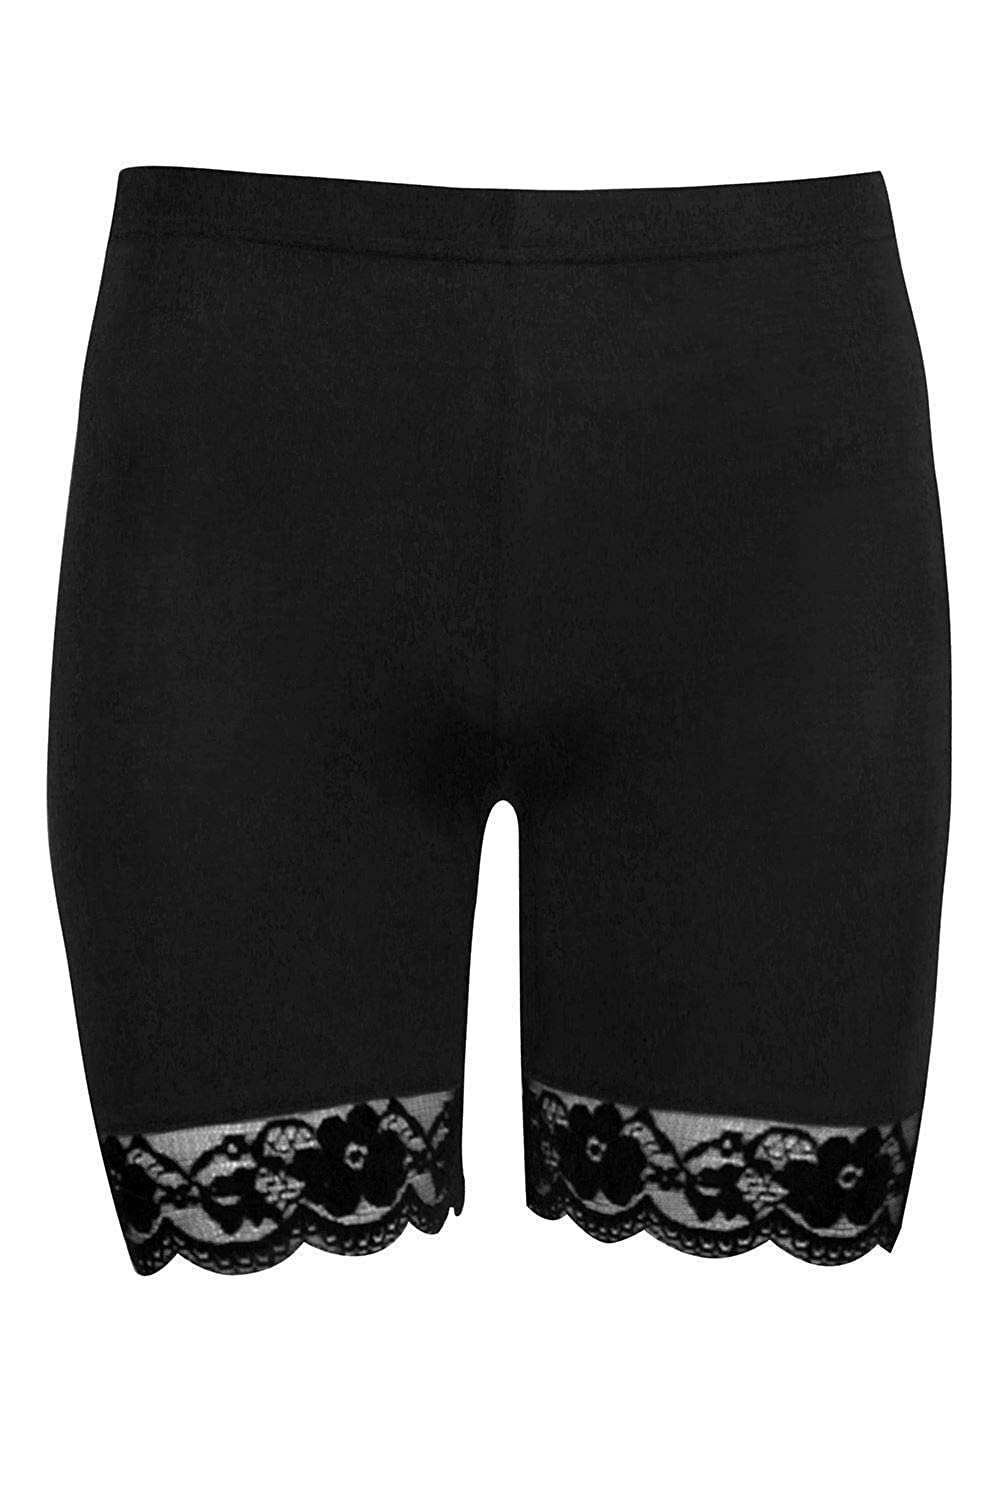 21Fashion Womens Scallop Lace Trim Cycling Shorts Ladies Gym Wear Jersey Hot Pants Biker Tights